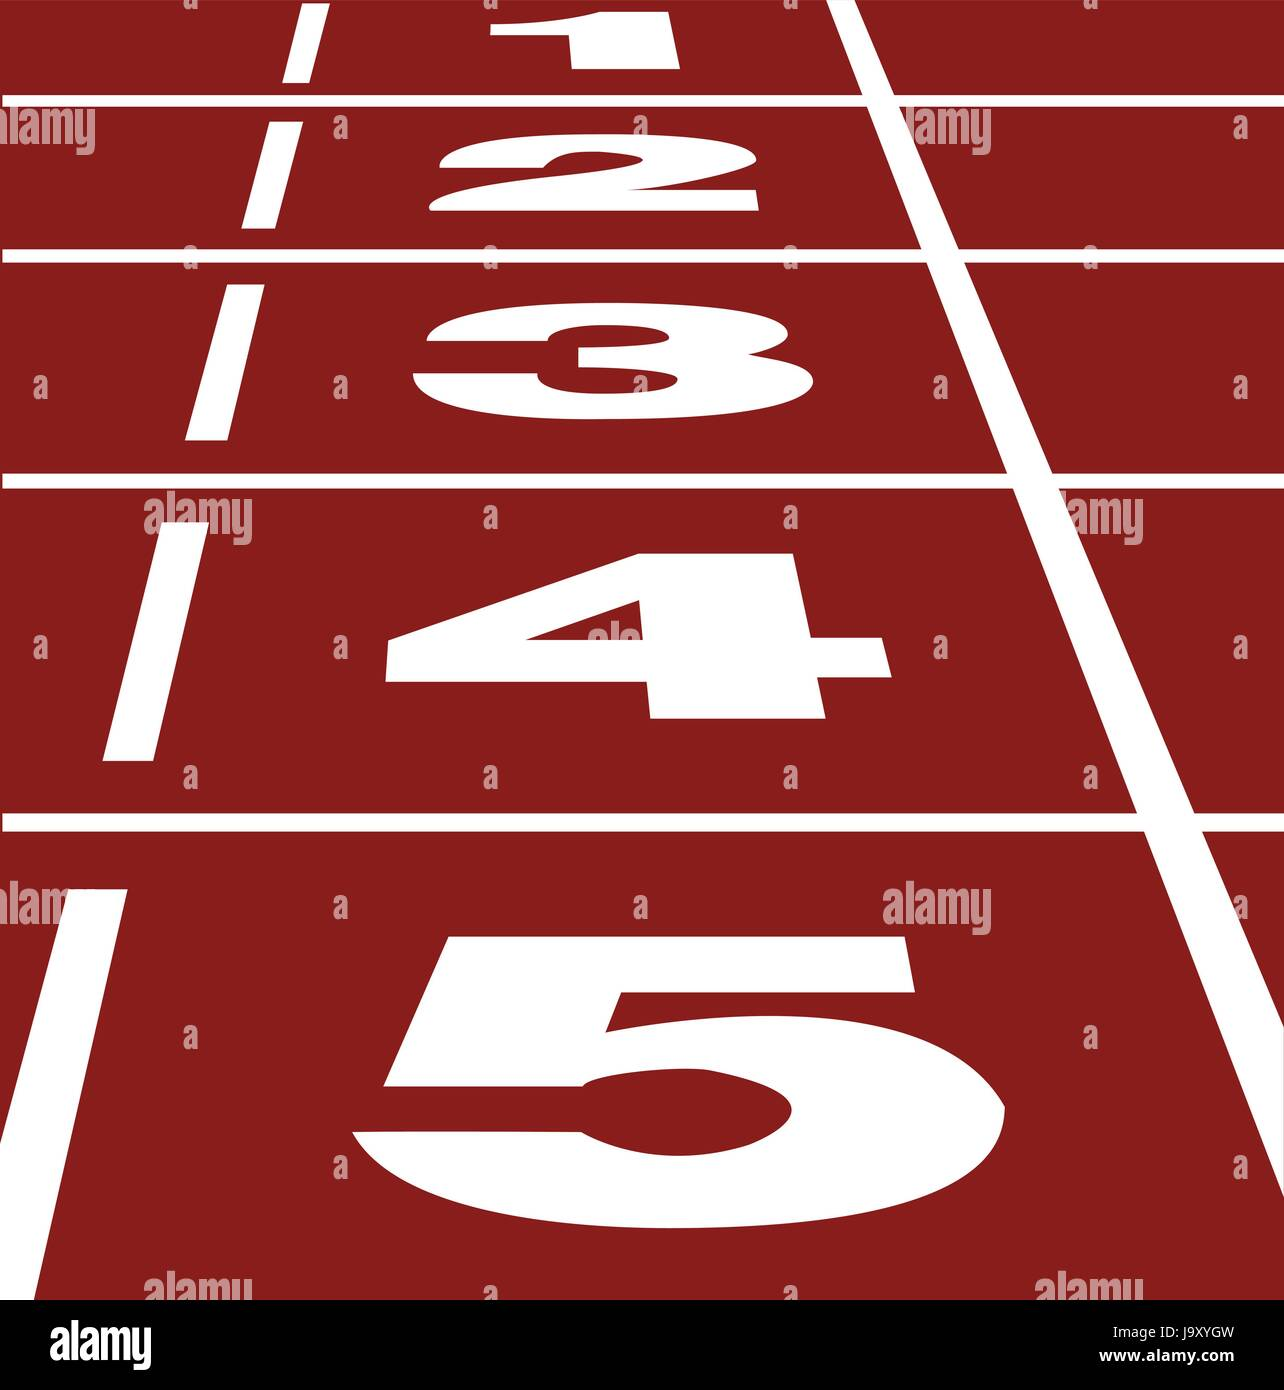 Perspective vector of start or finish position on running track Stock Vector